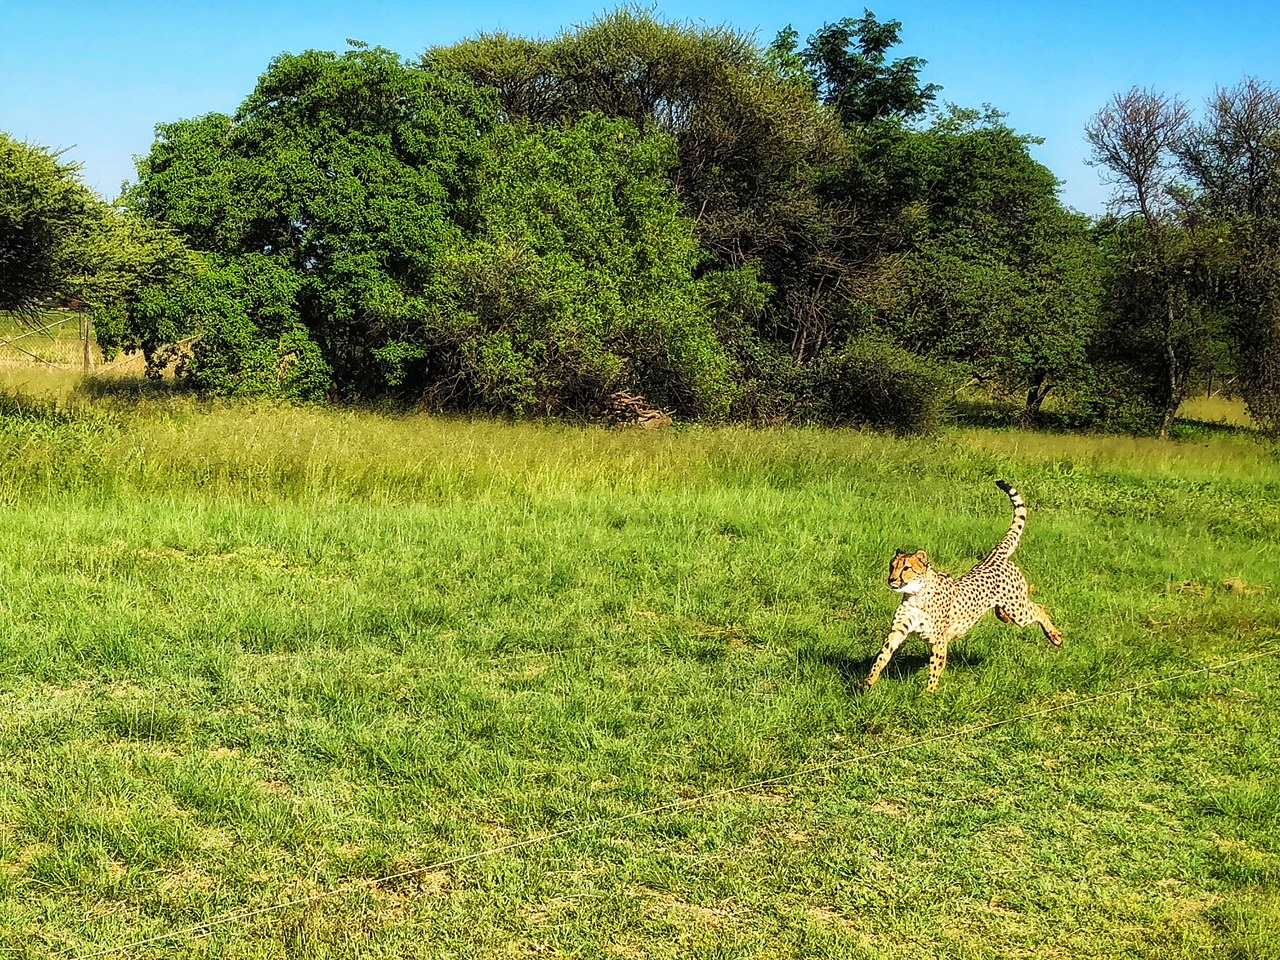 Ambassador Cheetah at The De Wildt. Amanzi Guests at the Cheetah and Wildlife Centre, also known as the Ann van Dyk Cheetah Centre